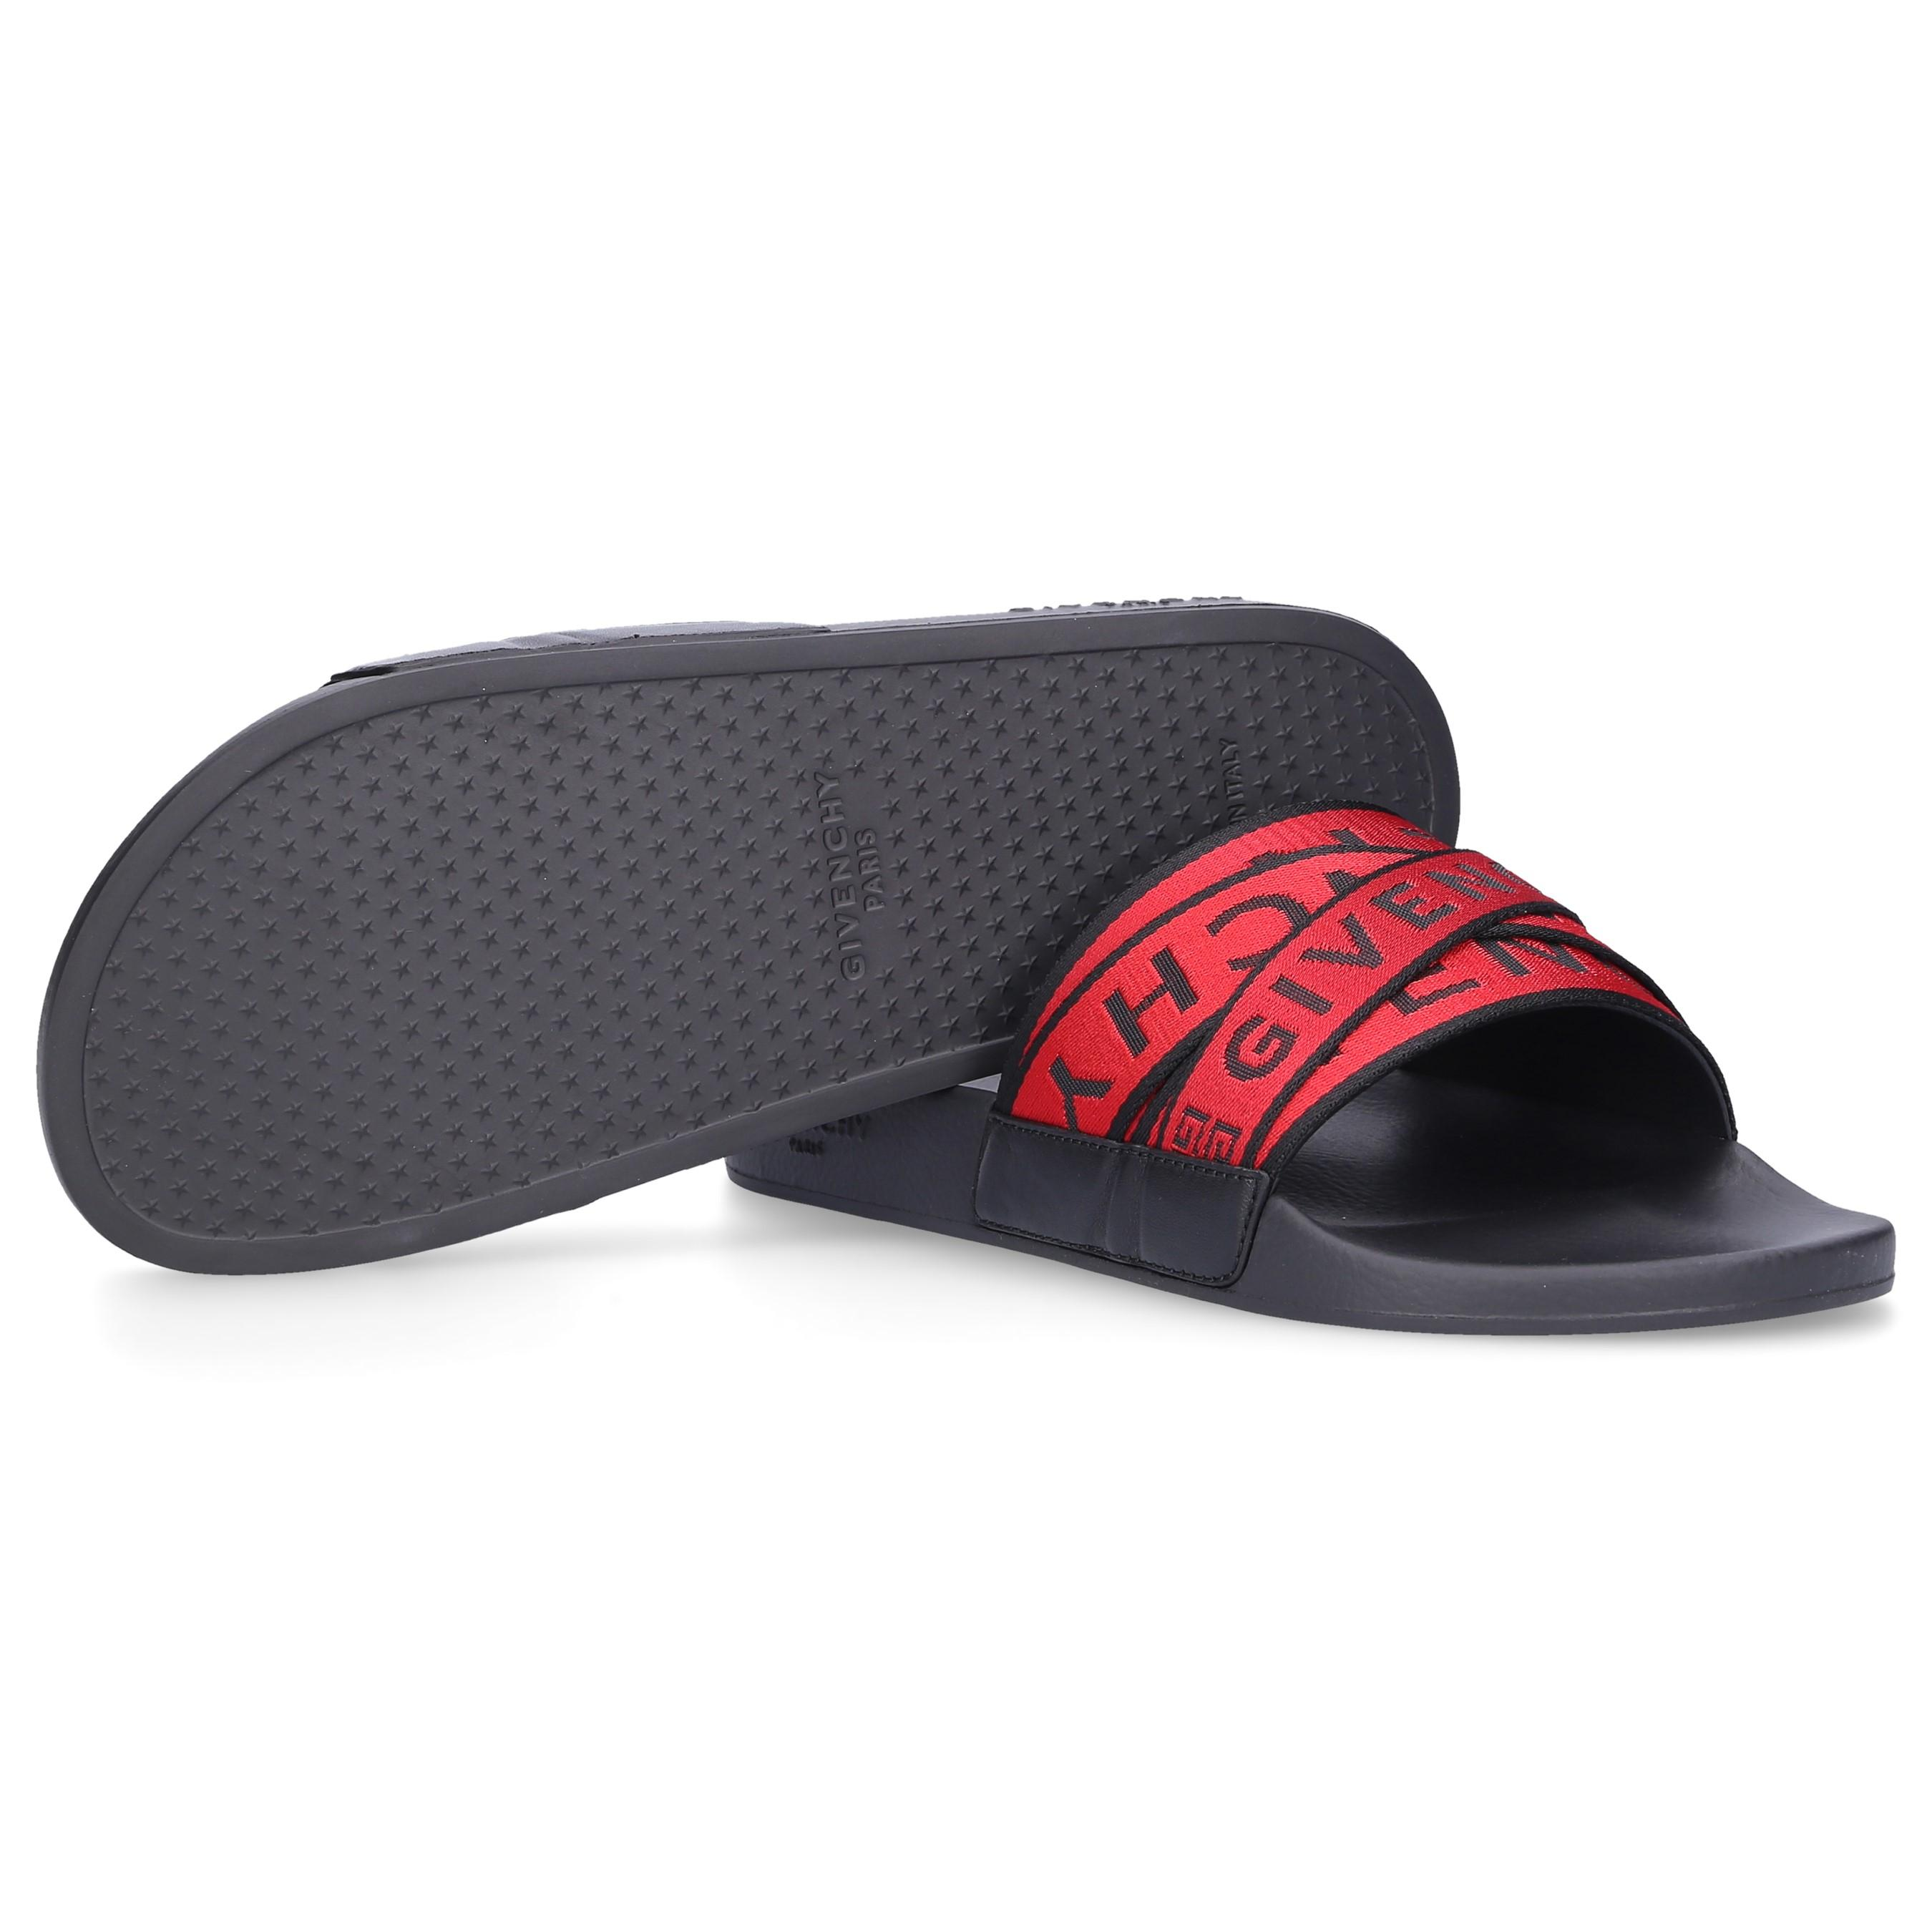 707101d5f69a Givenchy - Slippers Slide Nylon Logo Black Red for Men - Lyst. View  fullscreen